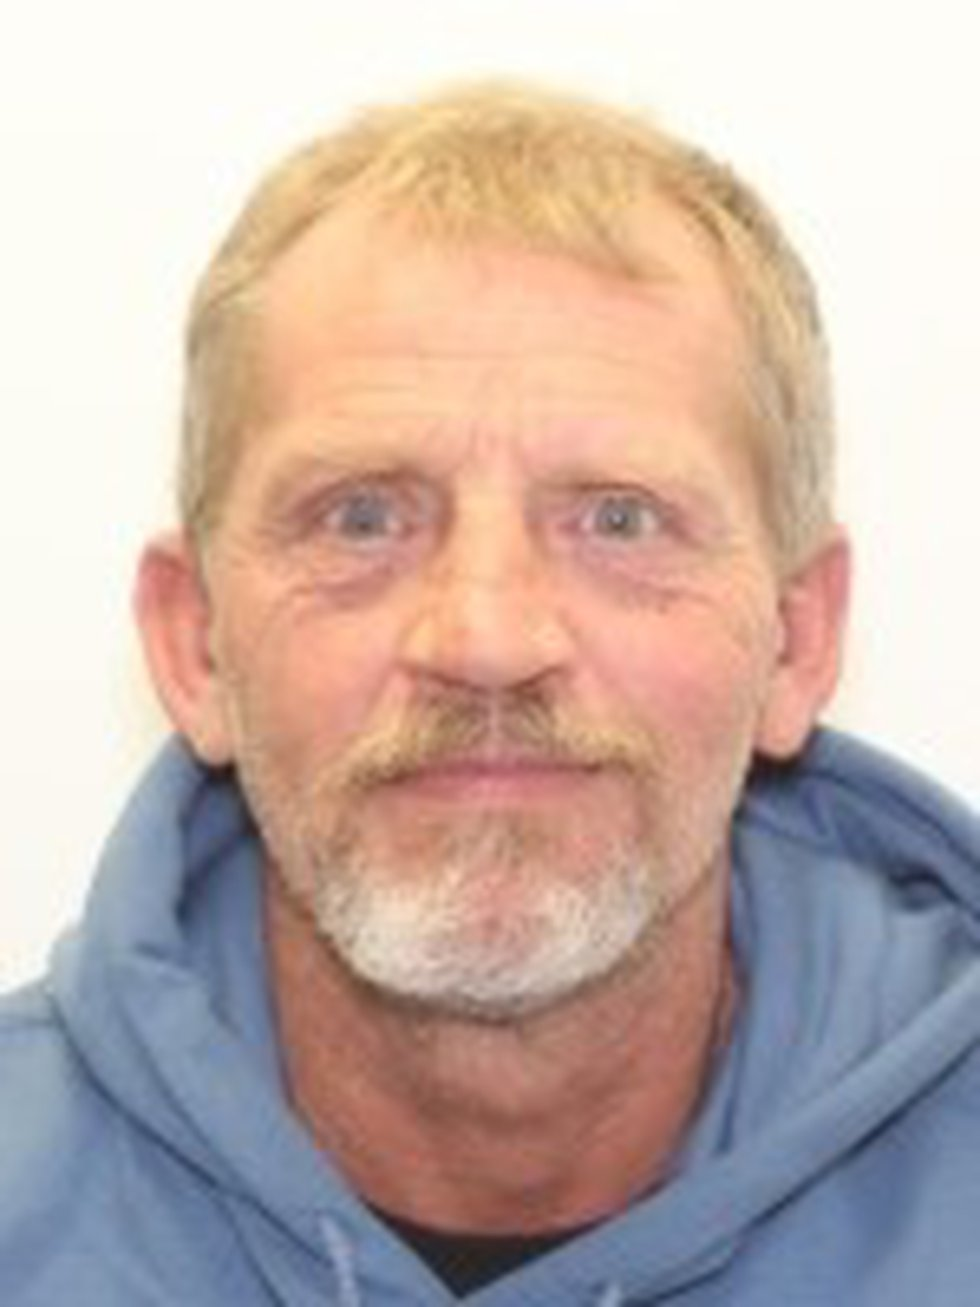 Benny Brown, 54, of Newton Falls was arrested for answering an on-line advertisement offering...